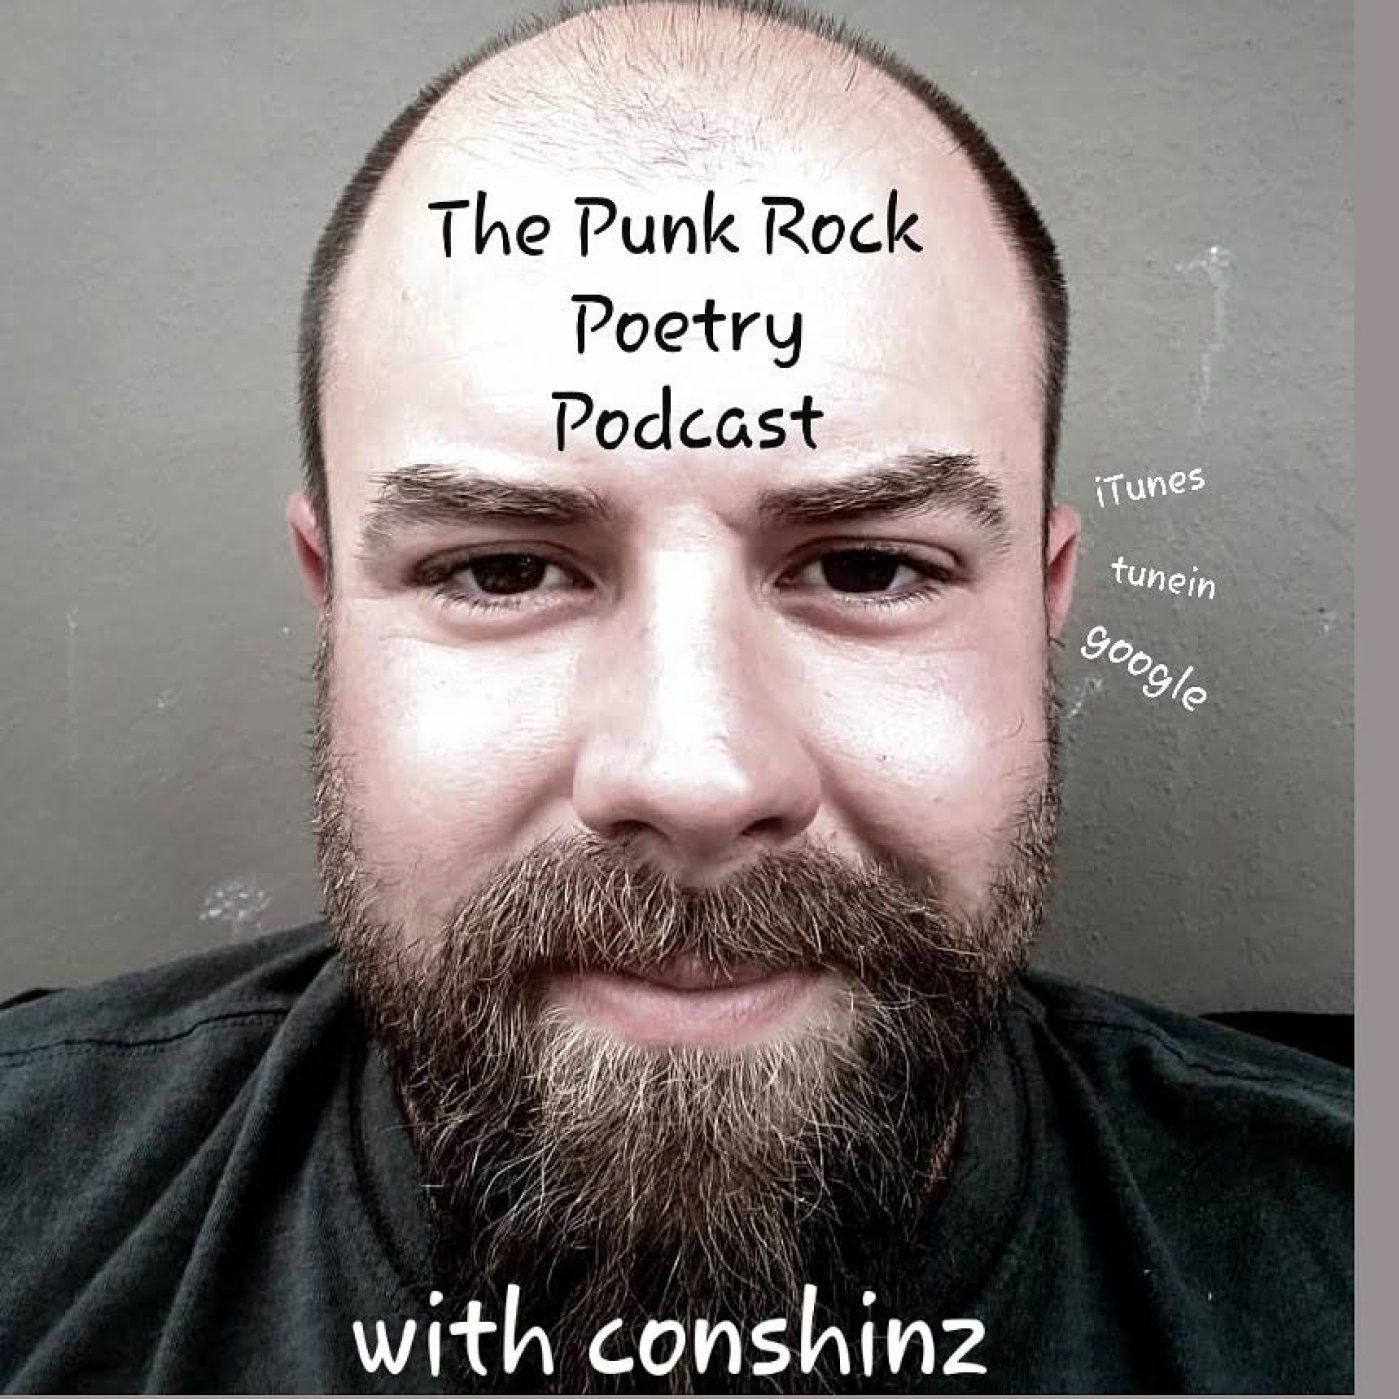 The Punk Rock Poetry Podcast - HIP HOP NIGHT - 10 20 2019